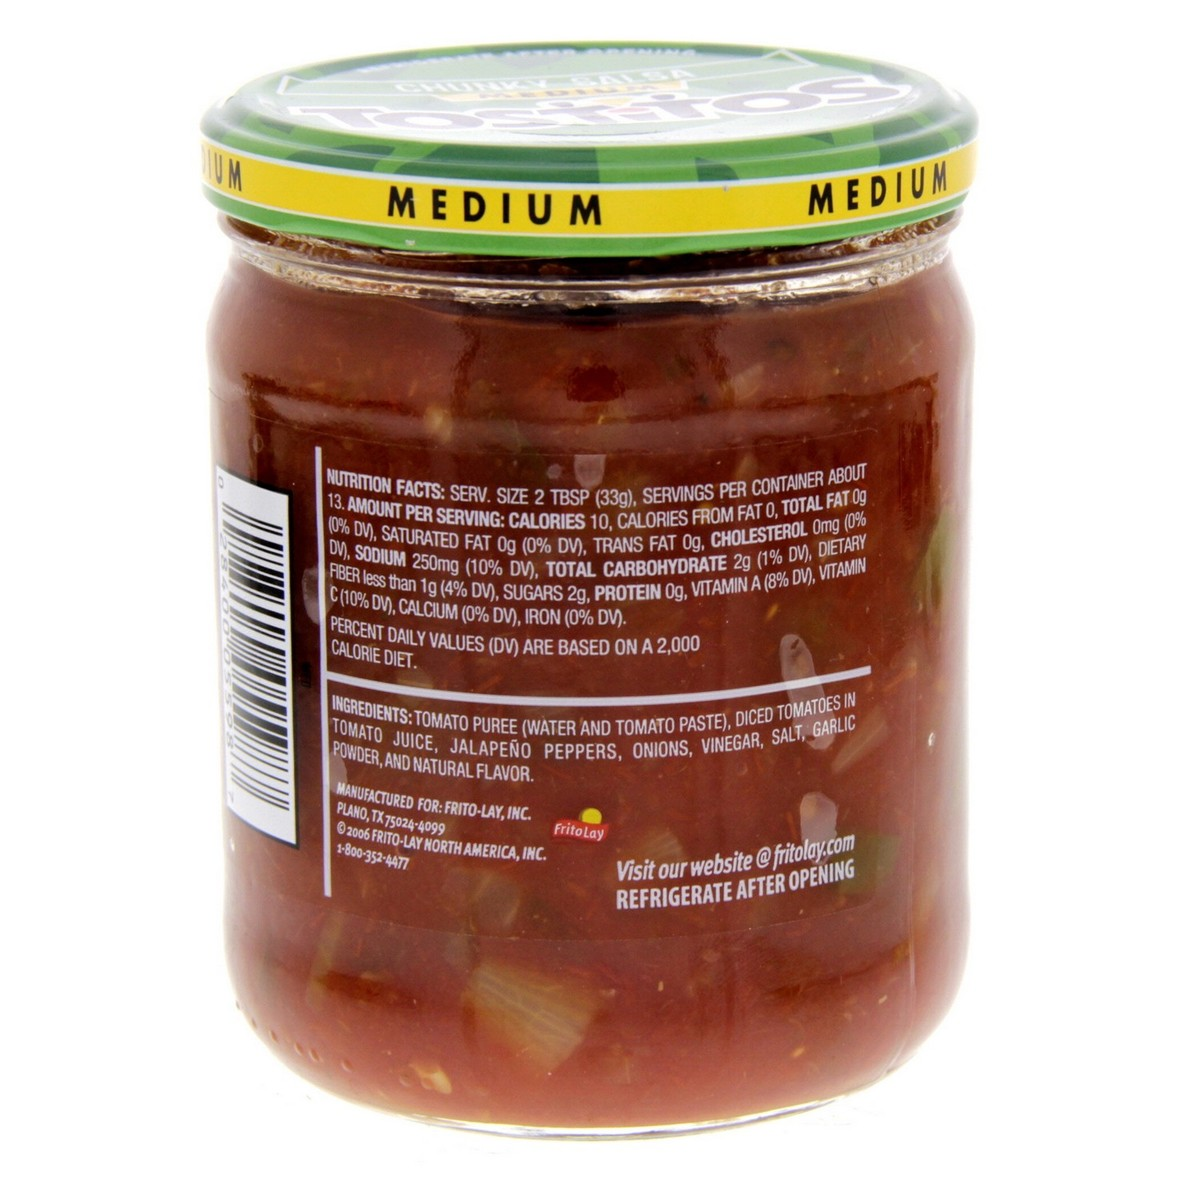 Buy Tostitos Chunky Salsa Medium 439 4g - Mexican Foods